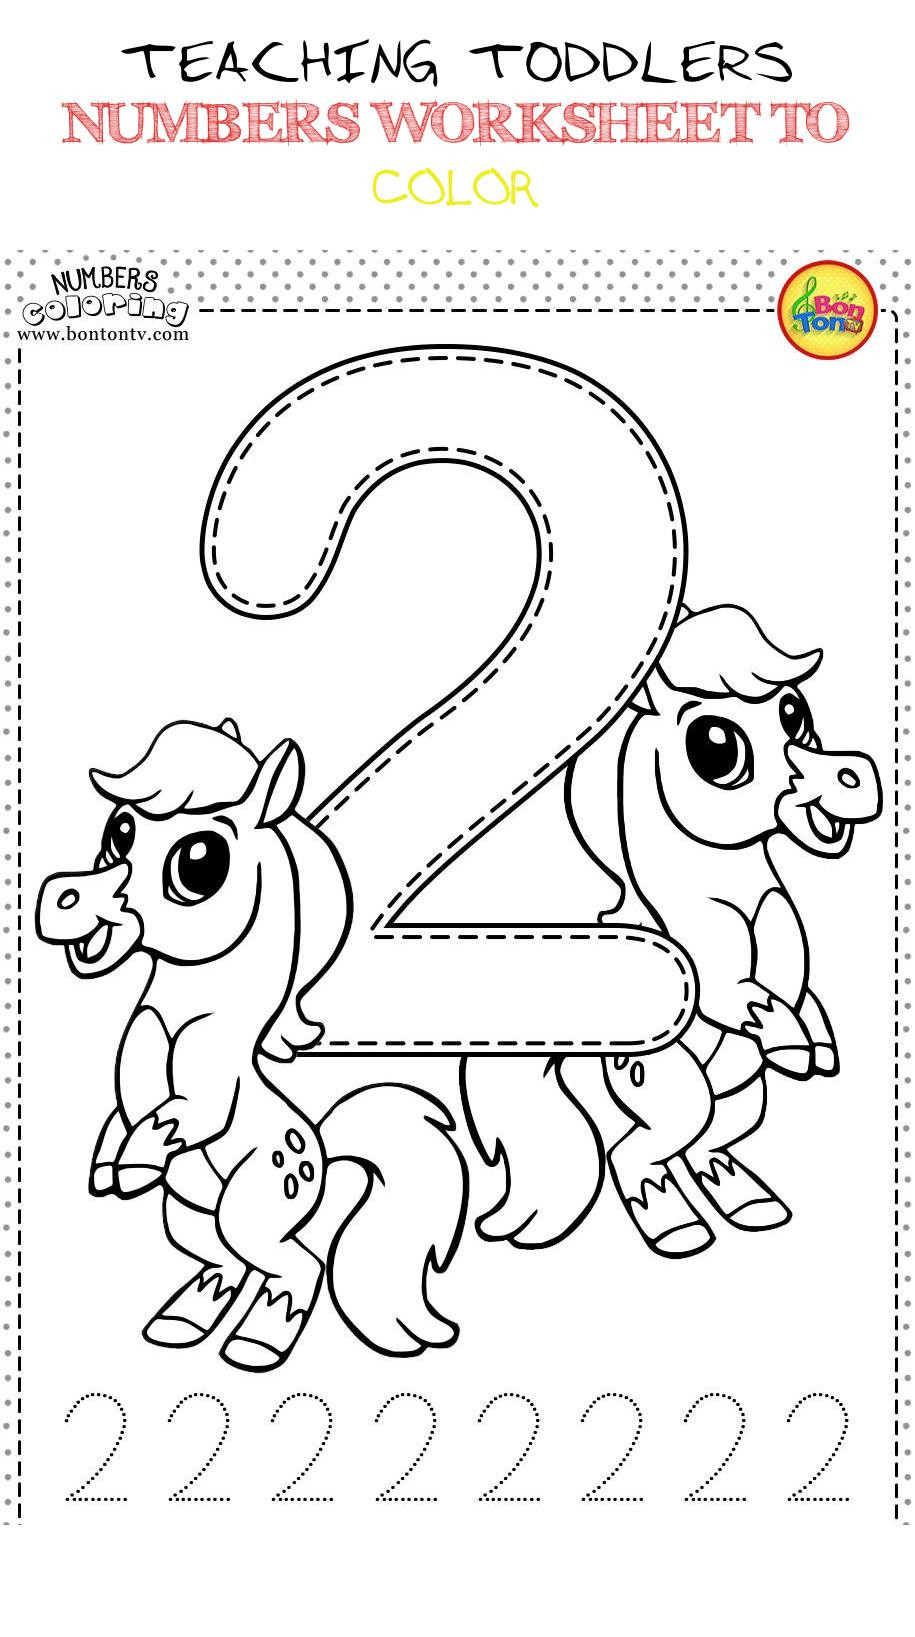 Number 2 Worksheets for Preschool Teaching toddlers Numbers Worksheet to Color 2 Teaching